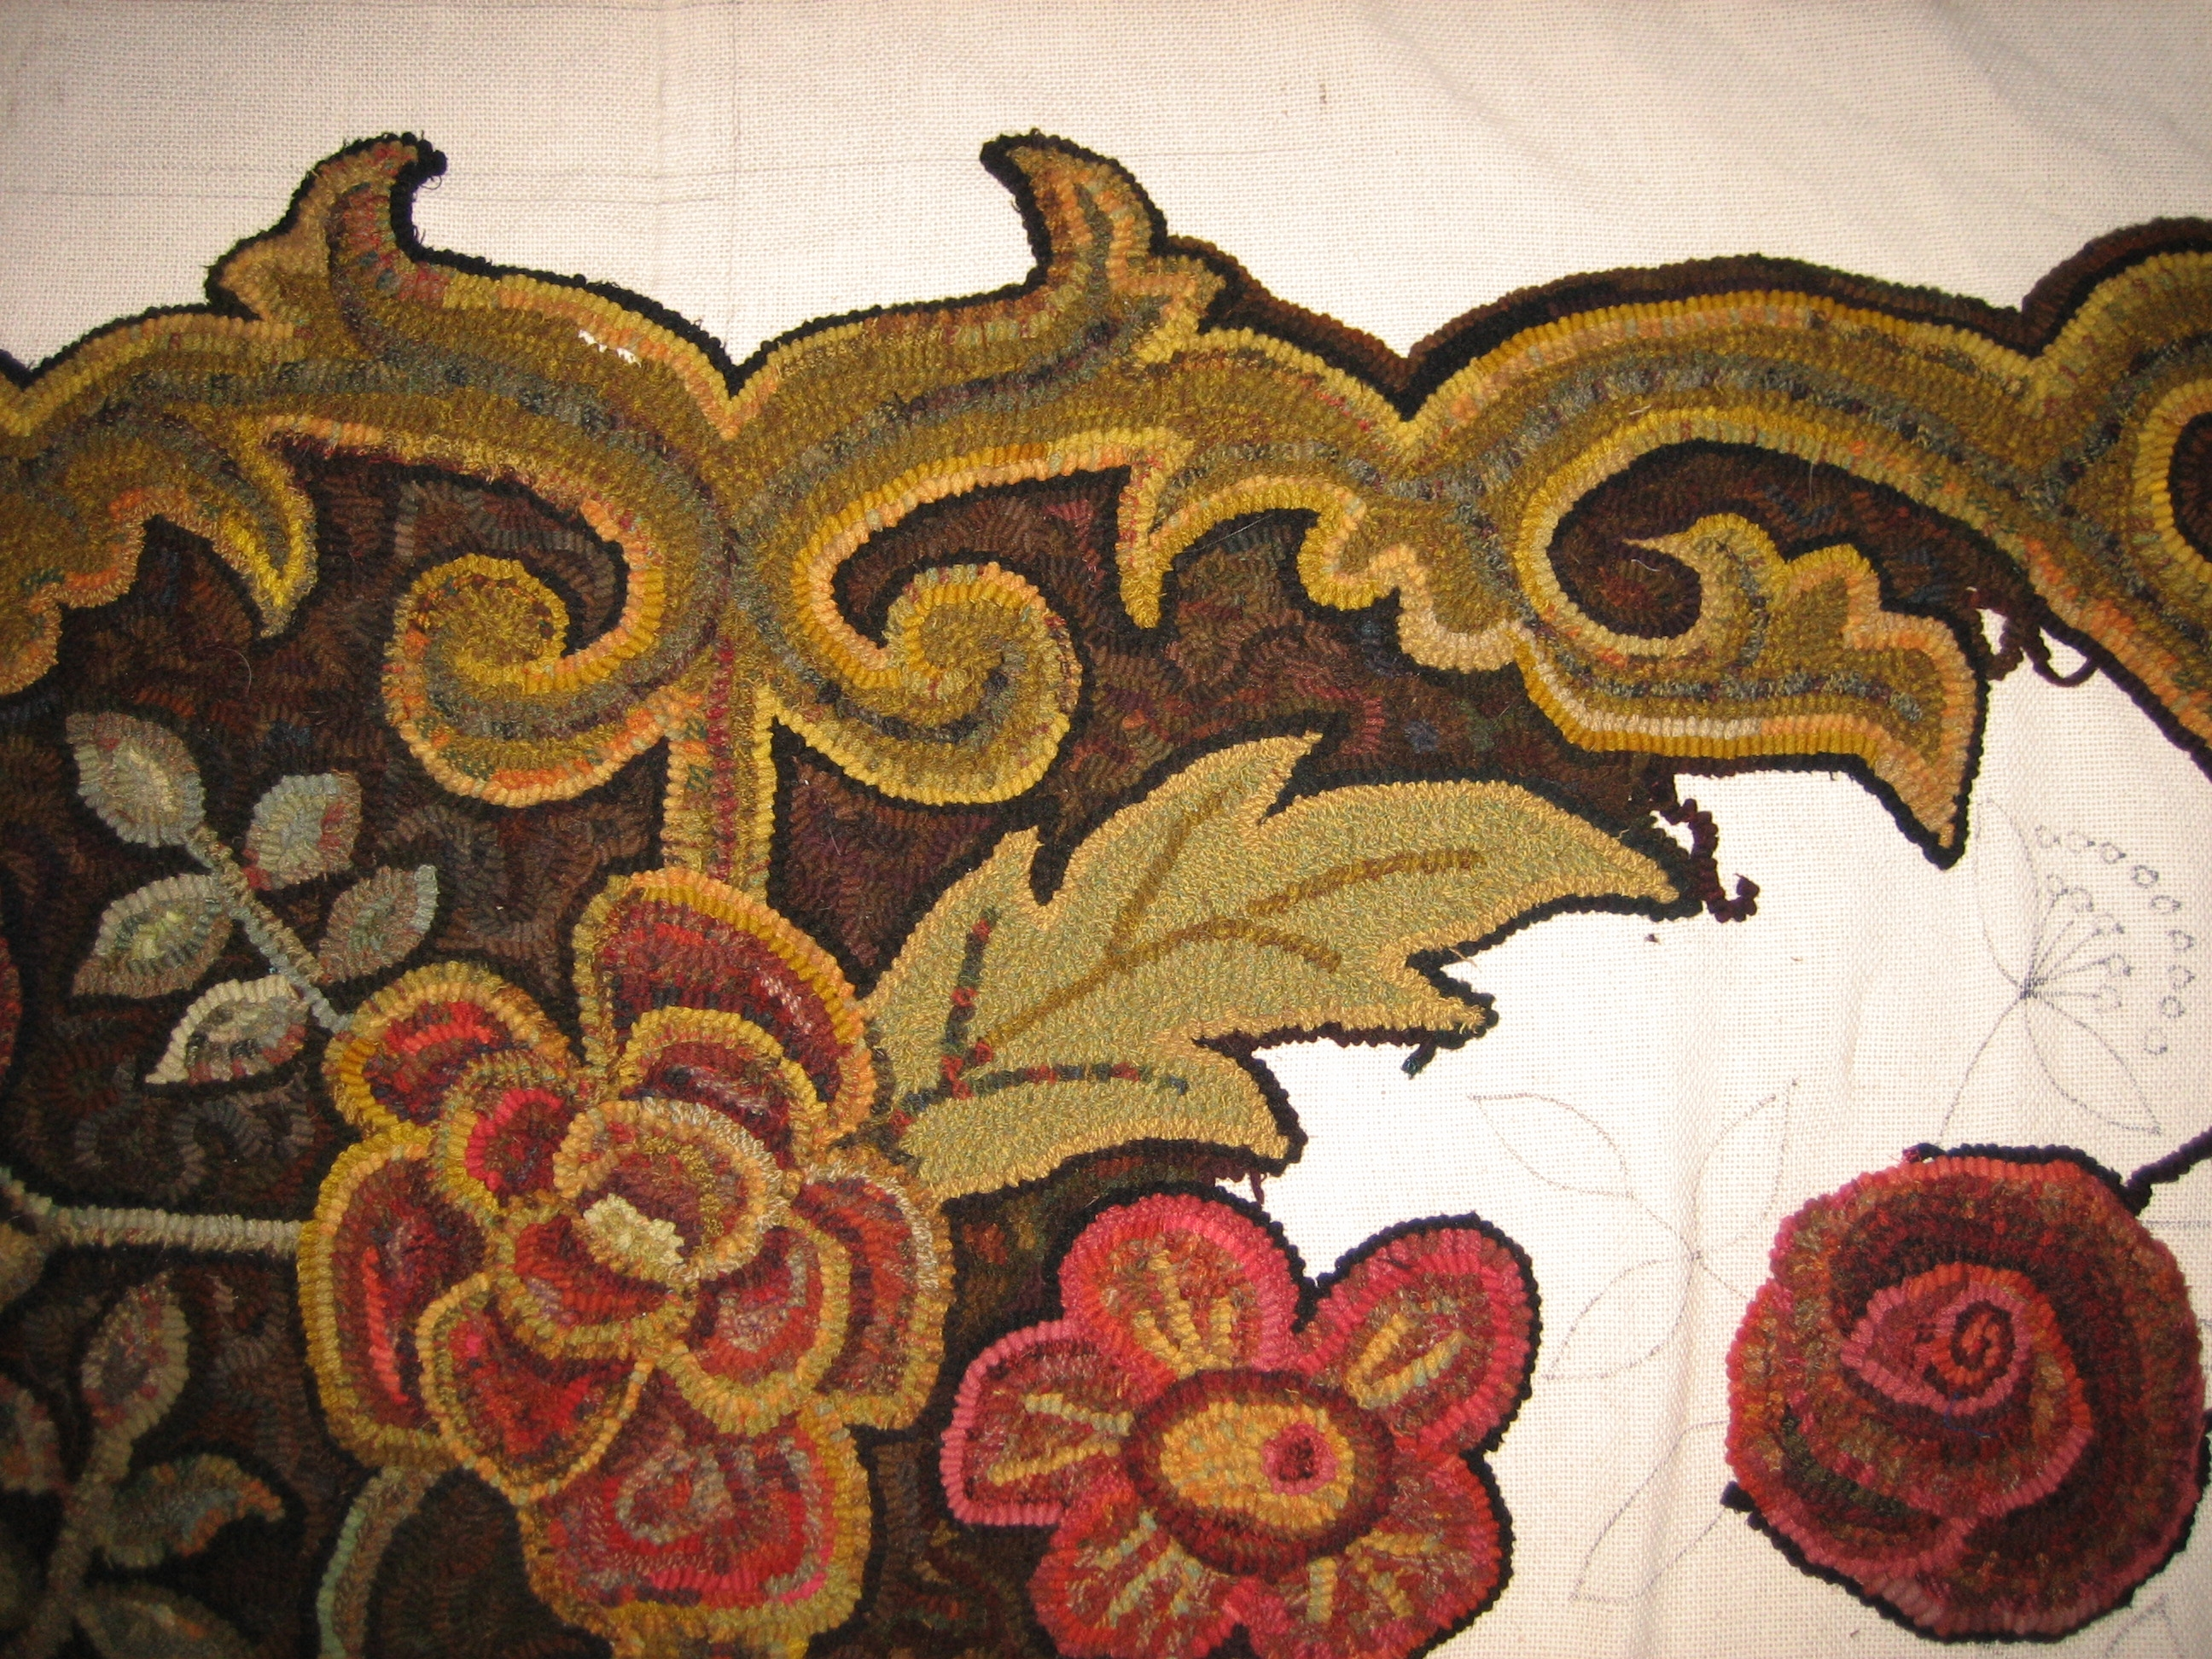 Day 38 of rug hooking: Resolving the Large Leaves